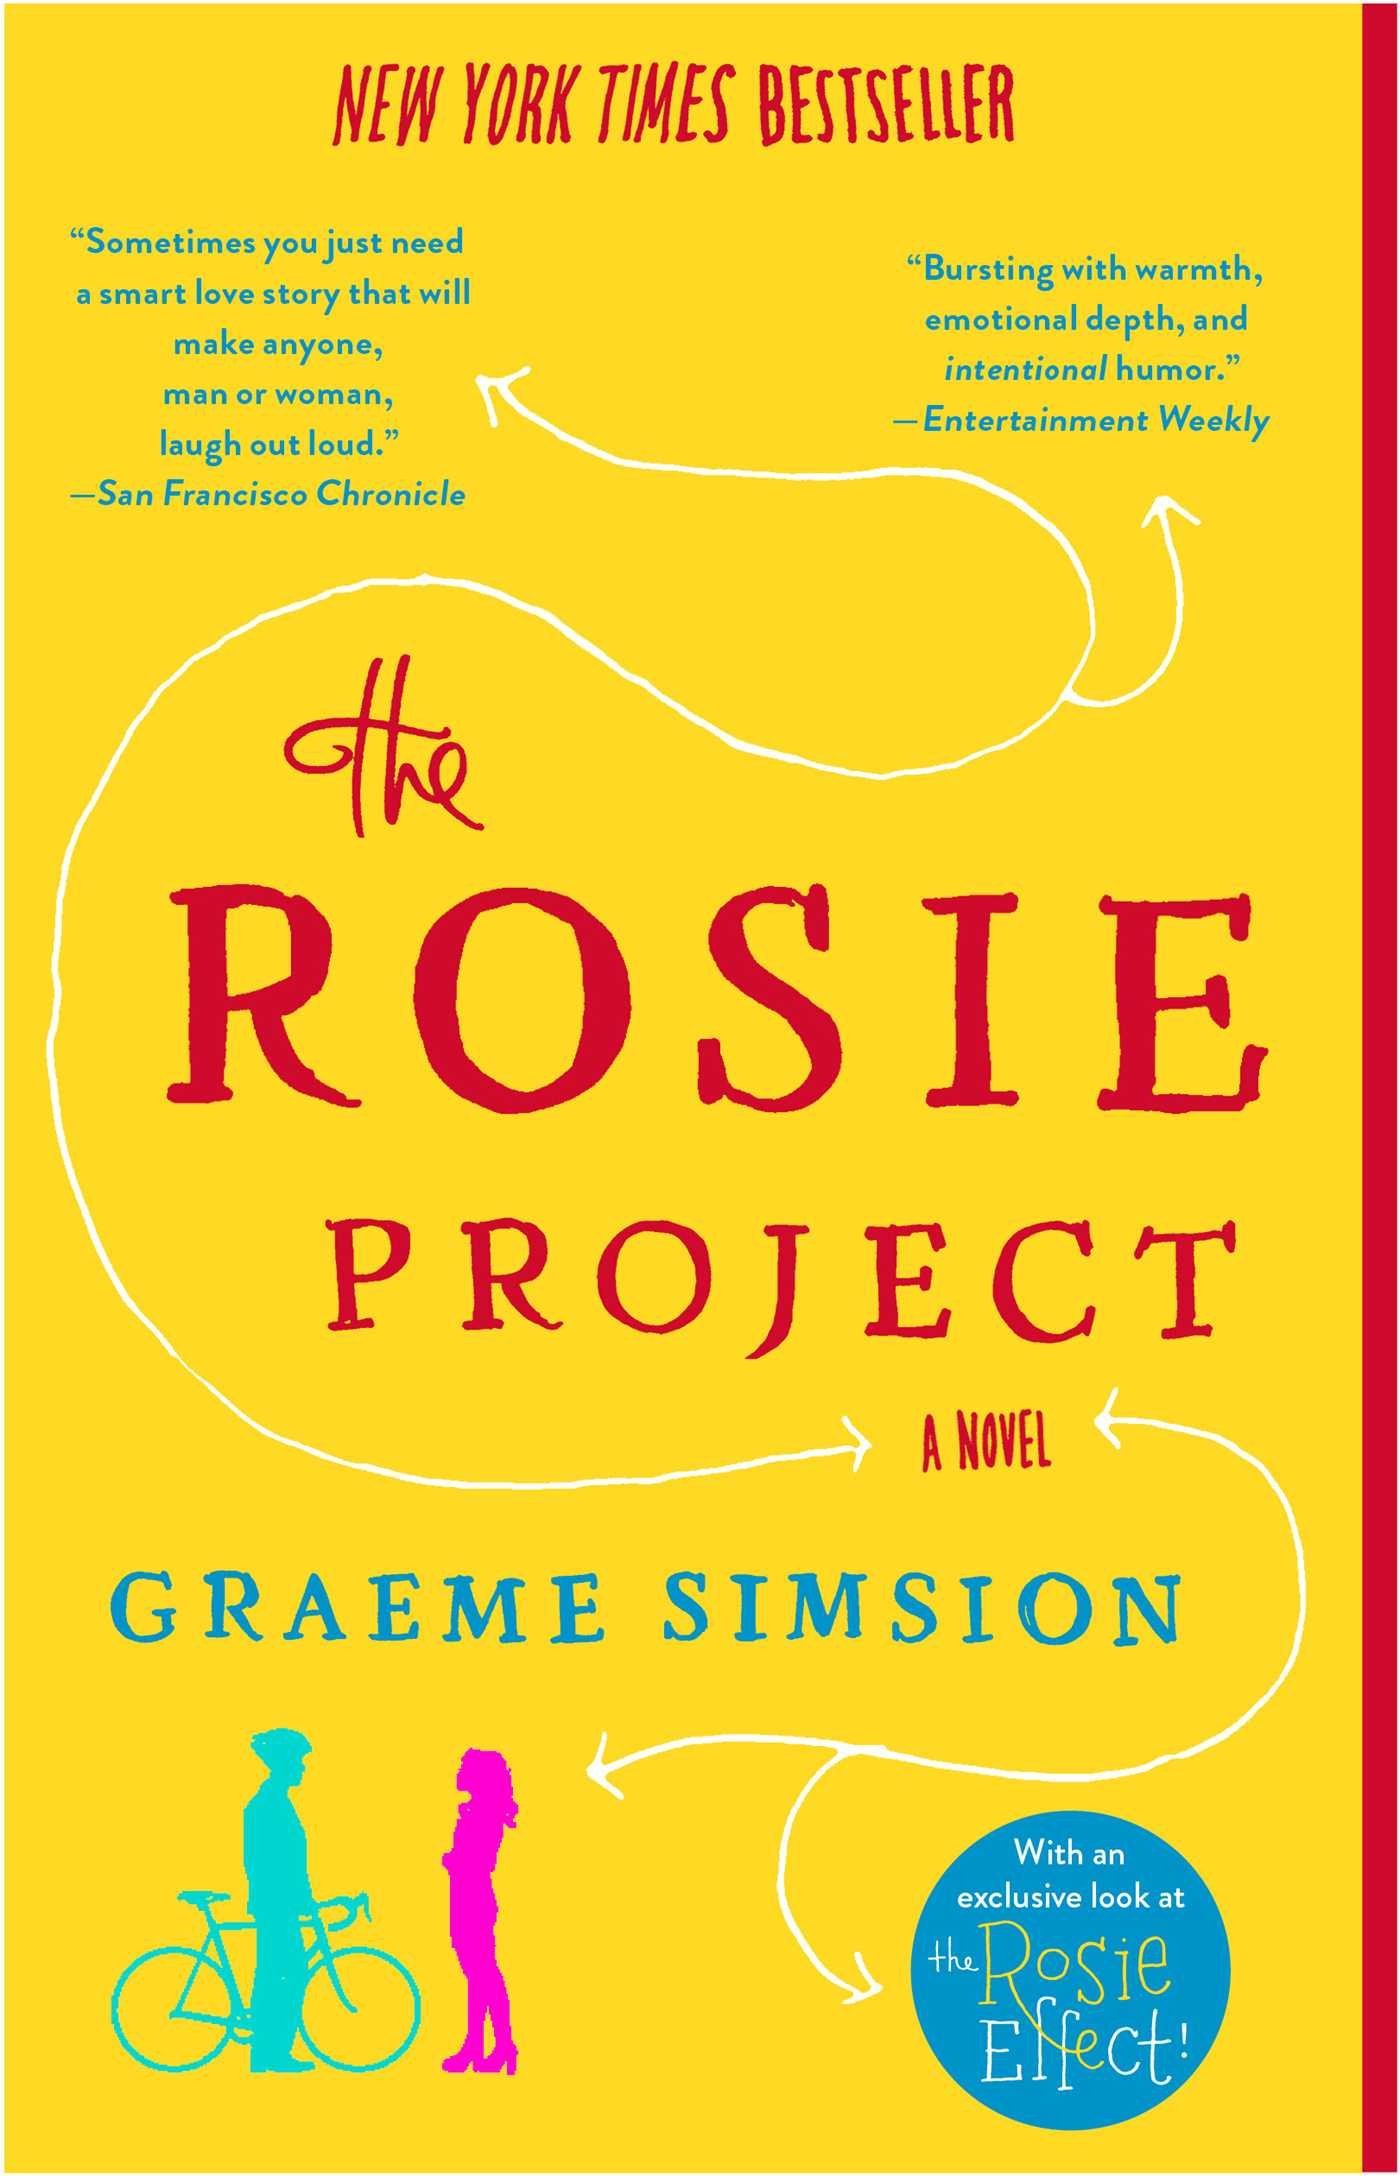 The Rosie Project: A Novel Paperback – June 3, 2014 Graeme Simsion Simon & Schuster 1476729093 Humorous